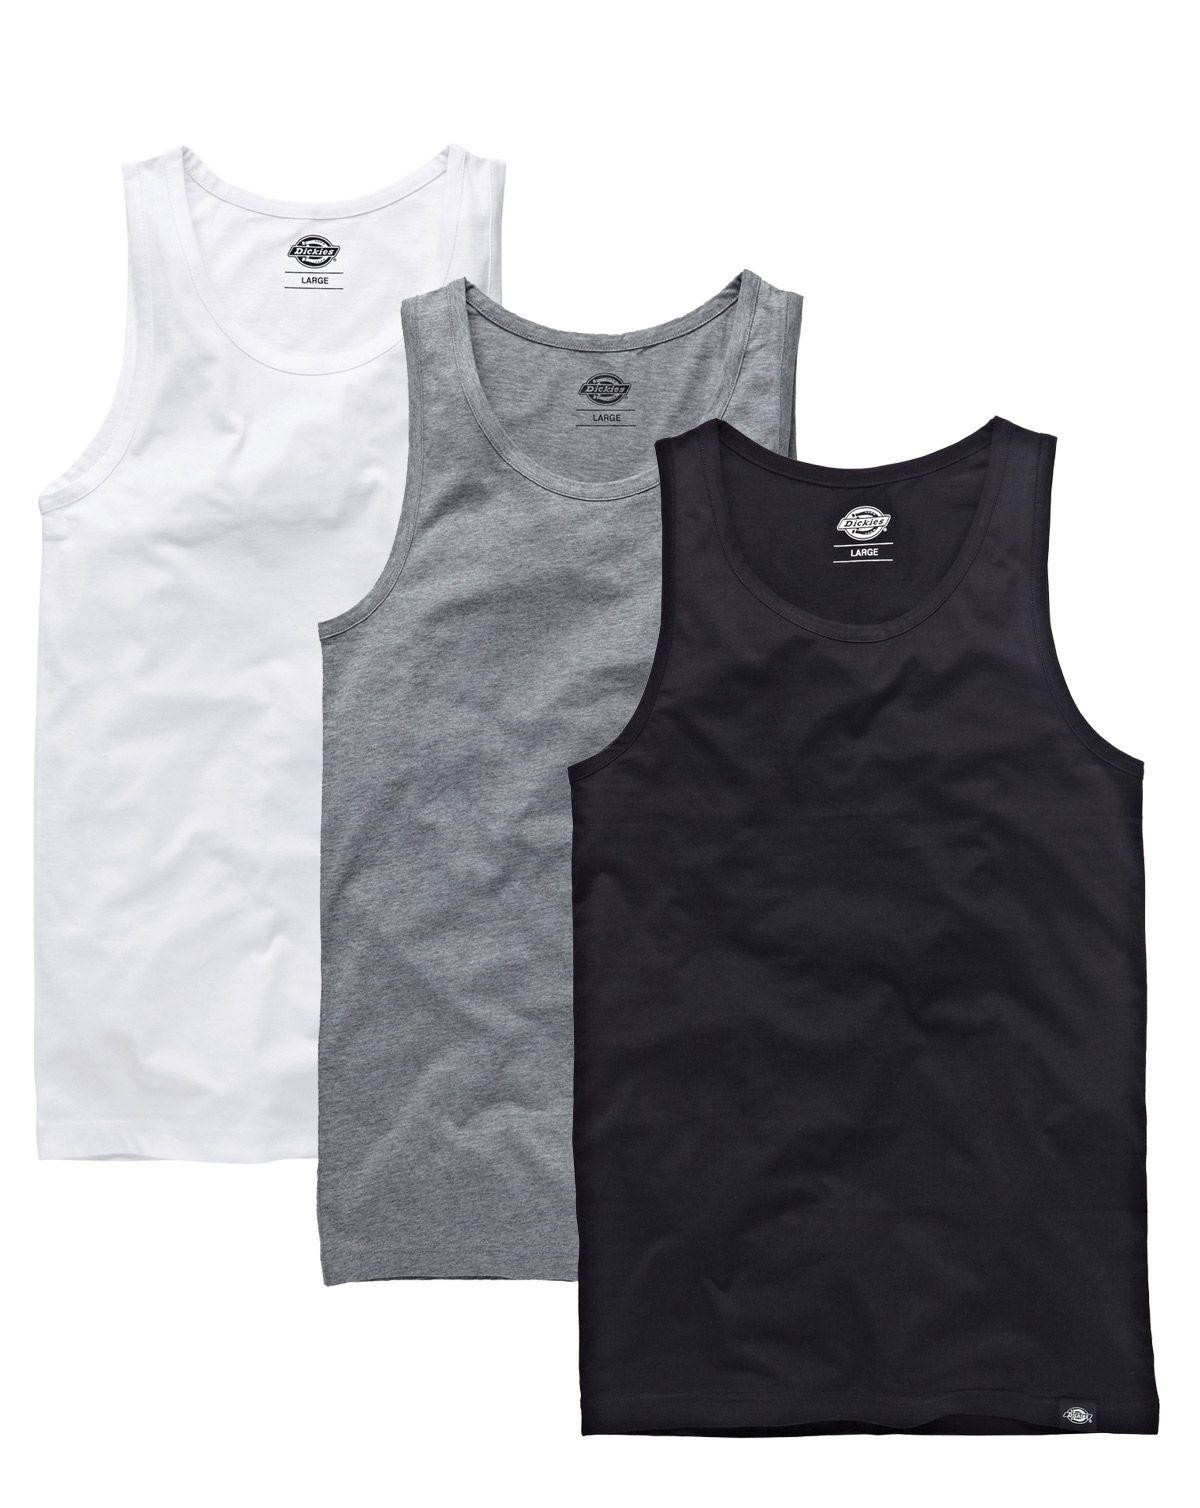 Dickies Loose Fit Tank tops - 3-Pack (Black, white and gray melange, XS)